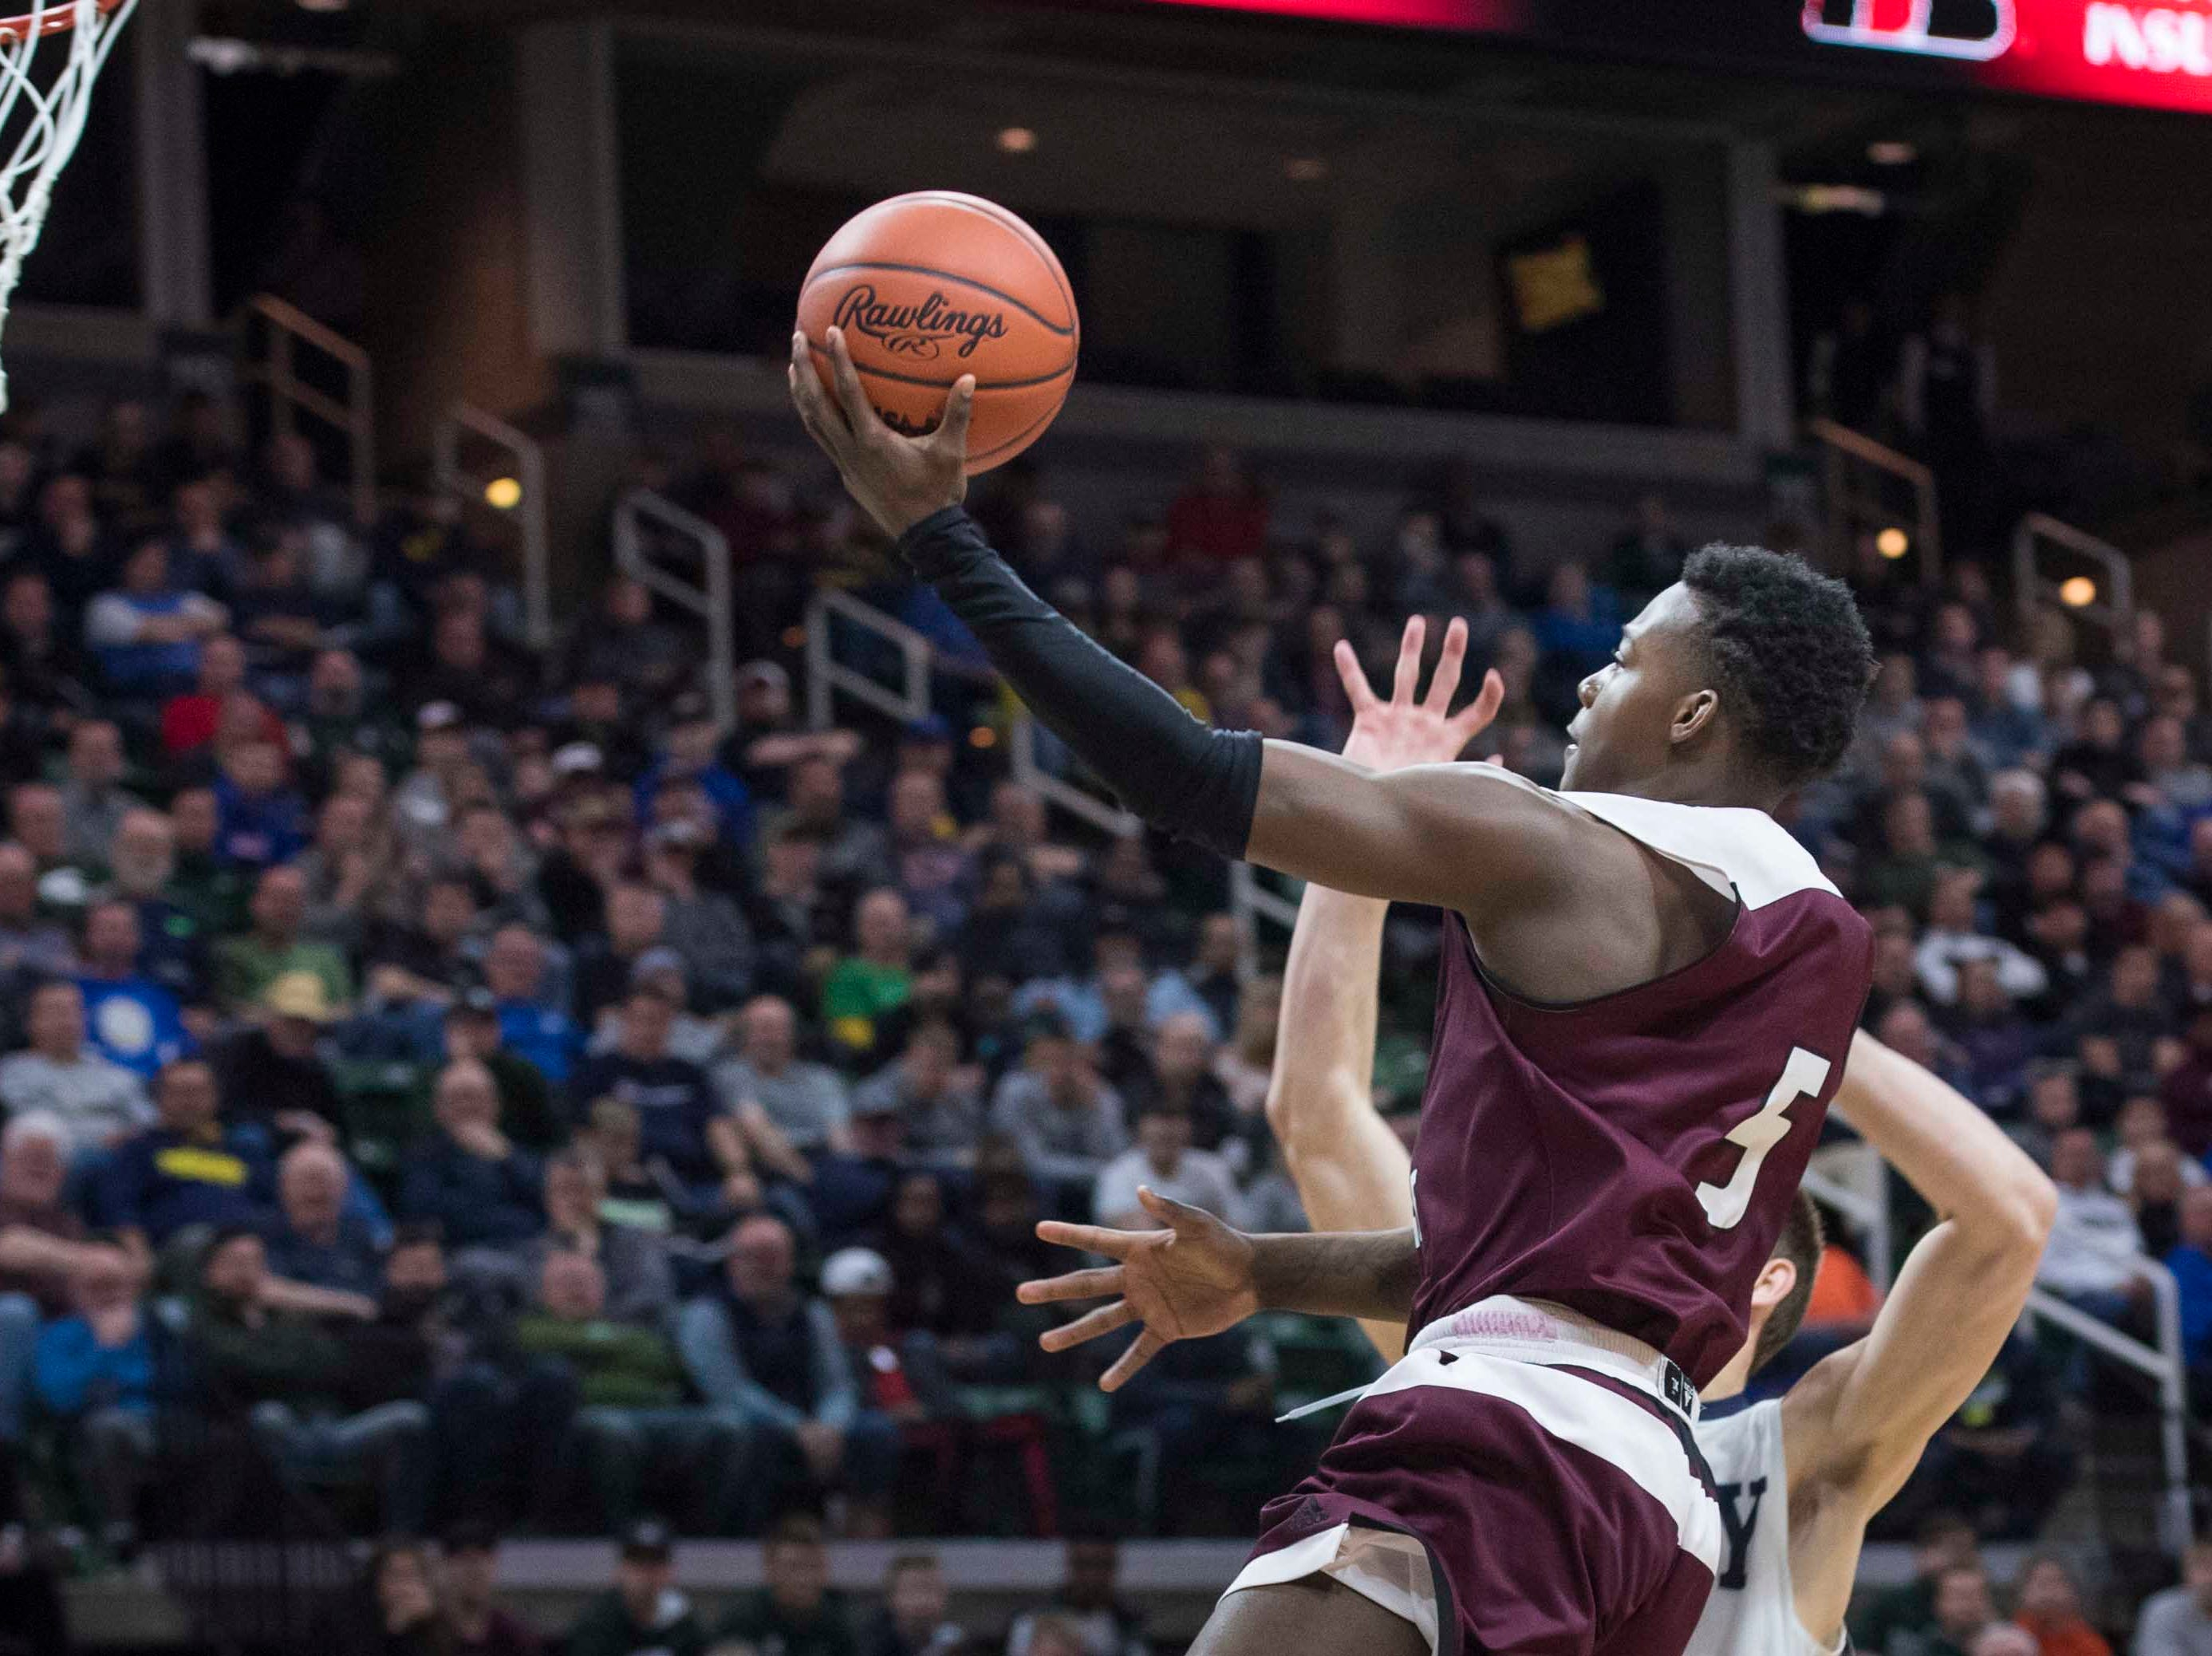 River Rouge's Jason Norton shoots a layup in the first half.